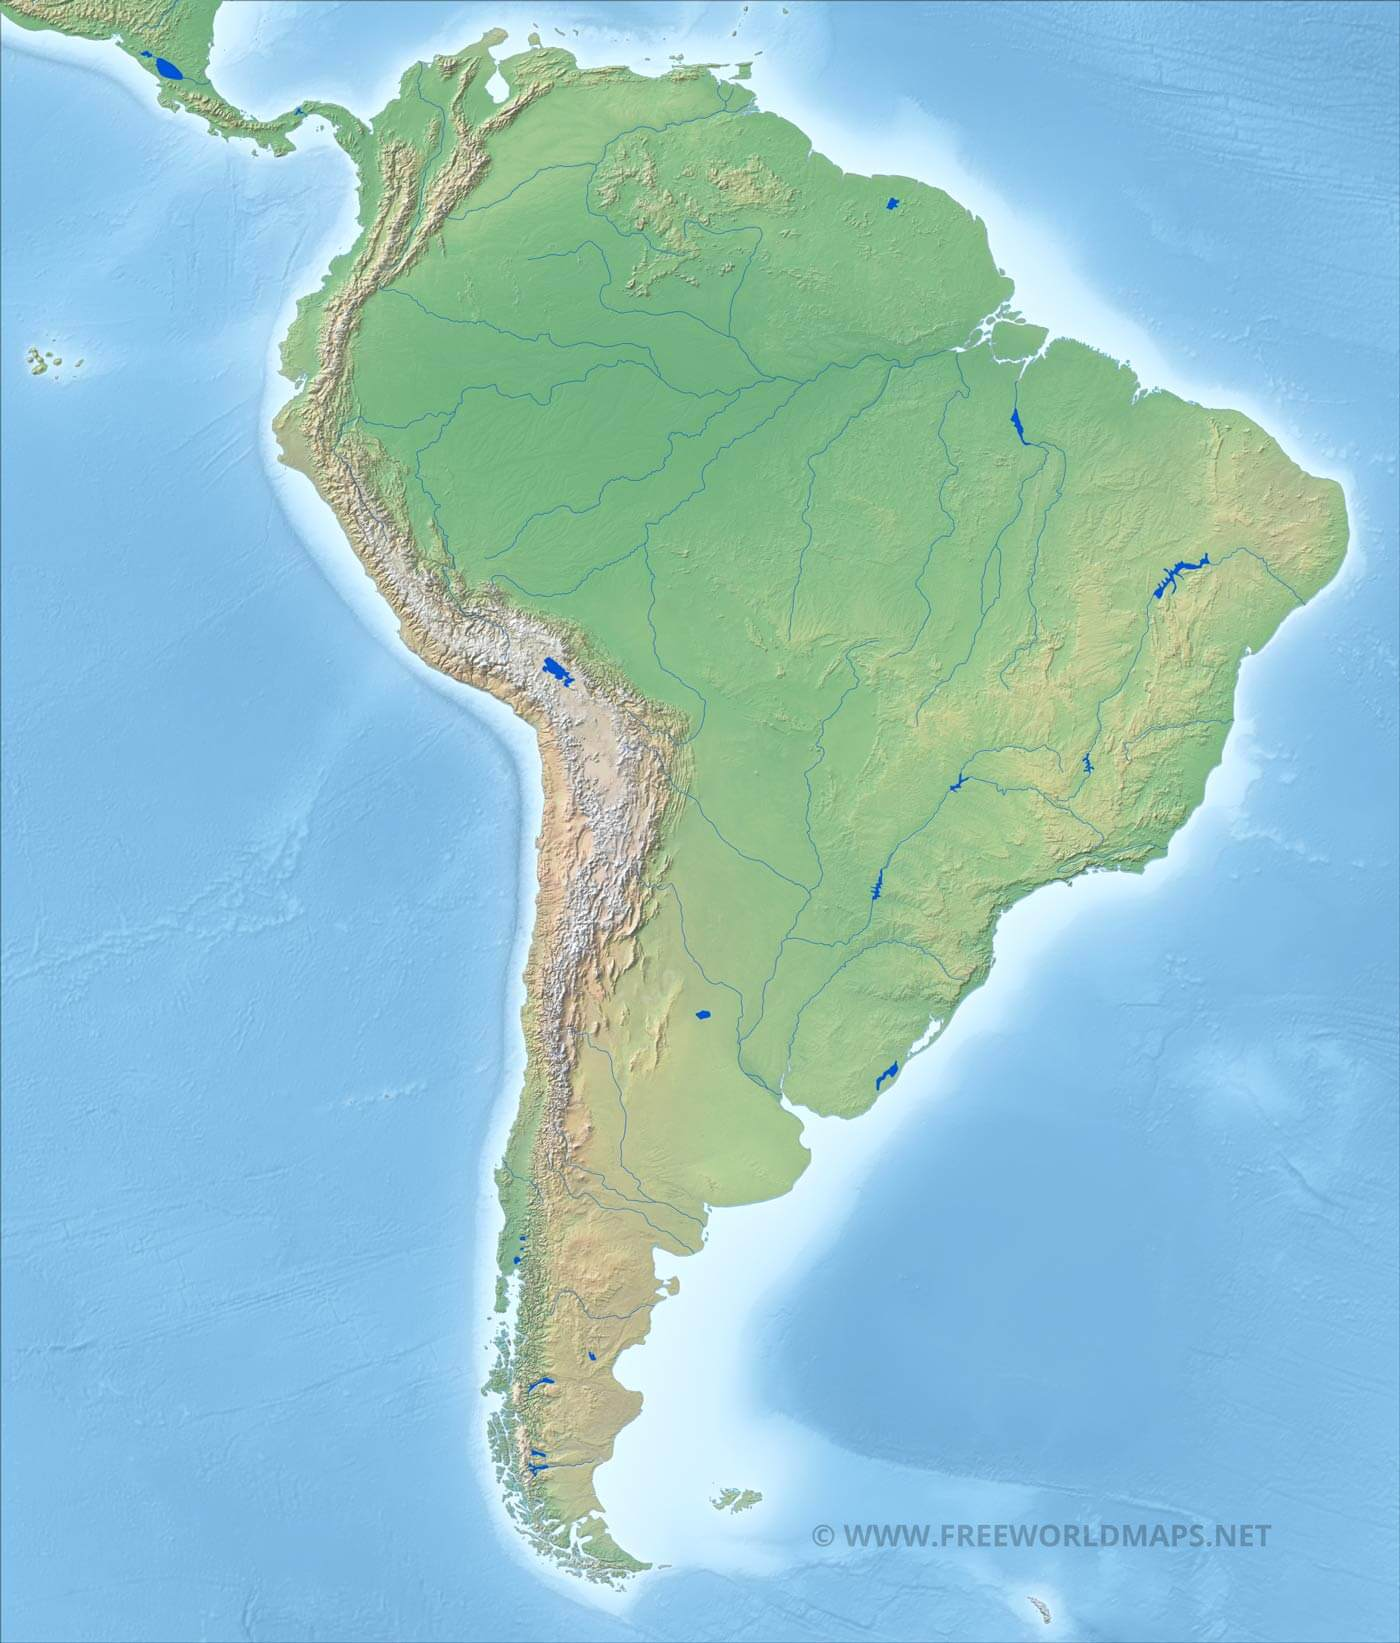 South America Physical Map – Freeworldmaps.net on map us and mexico map, hawaii continent map, north america west map, north america earth map, north america scale map, north america land map, north america environment map, canada continent map, north america power map, blank north america map, north america plateau map, jordan continent map, north america coast map, north america area map, north america sea map, argentina continent map, north america canyon map, north america south map, north america grid square map,